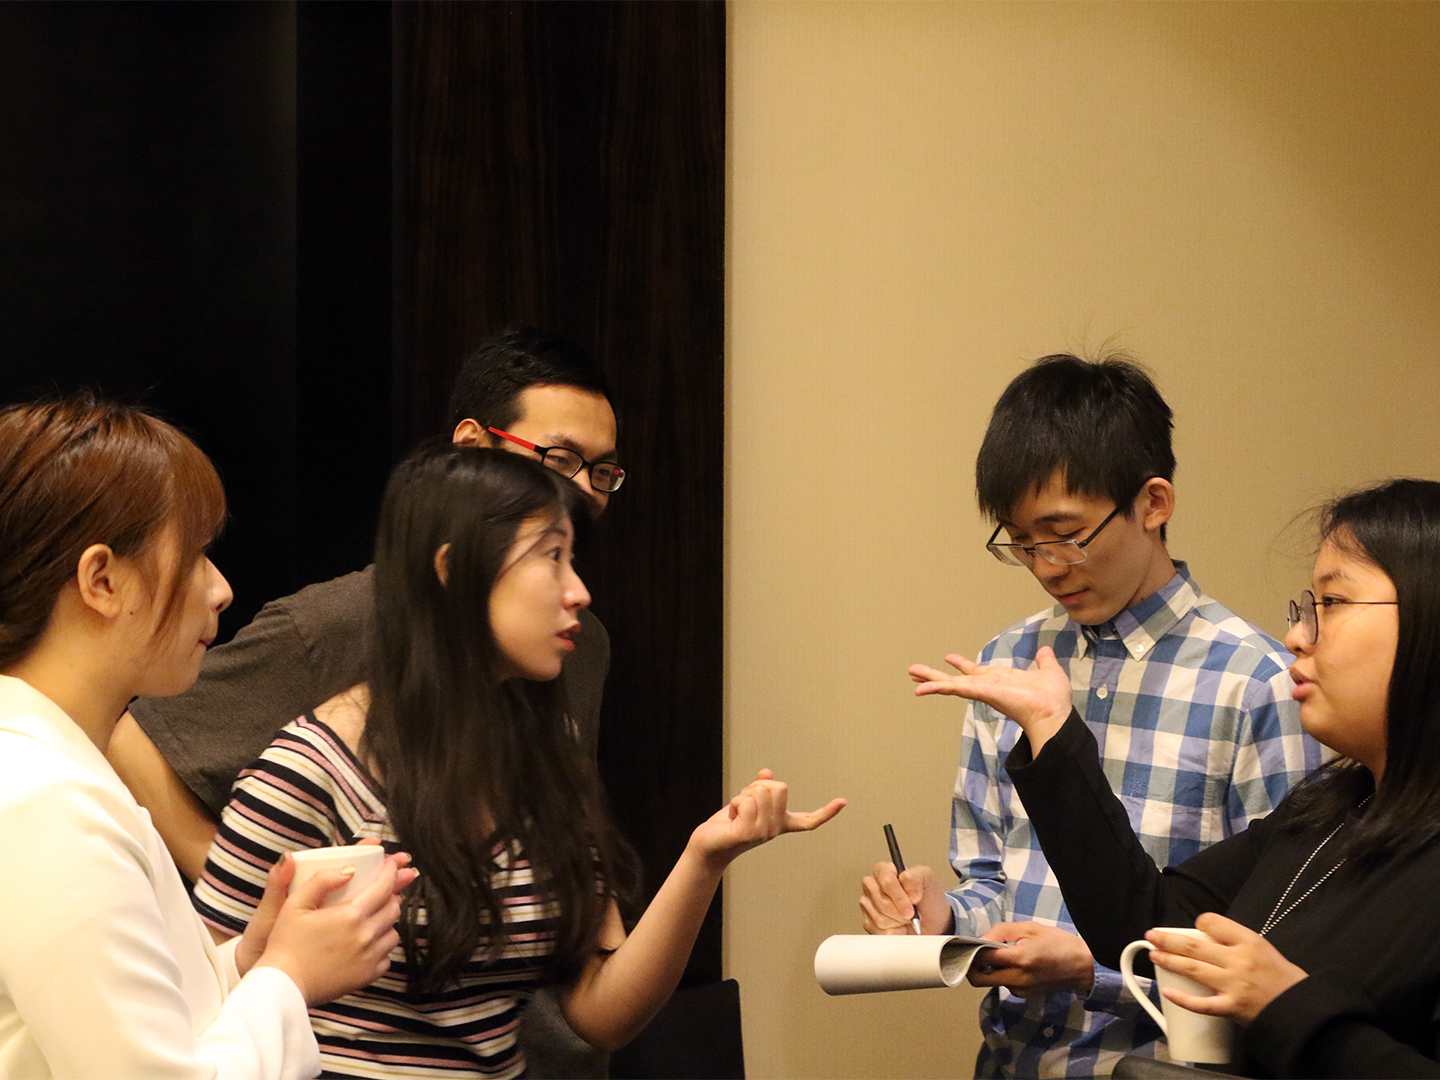 The Chinese student fellows discuss how their parents view their generation today.